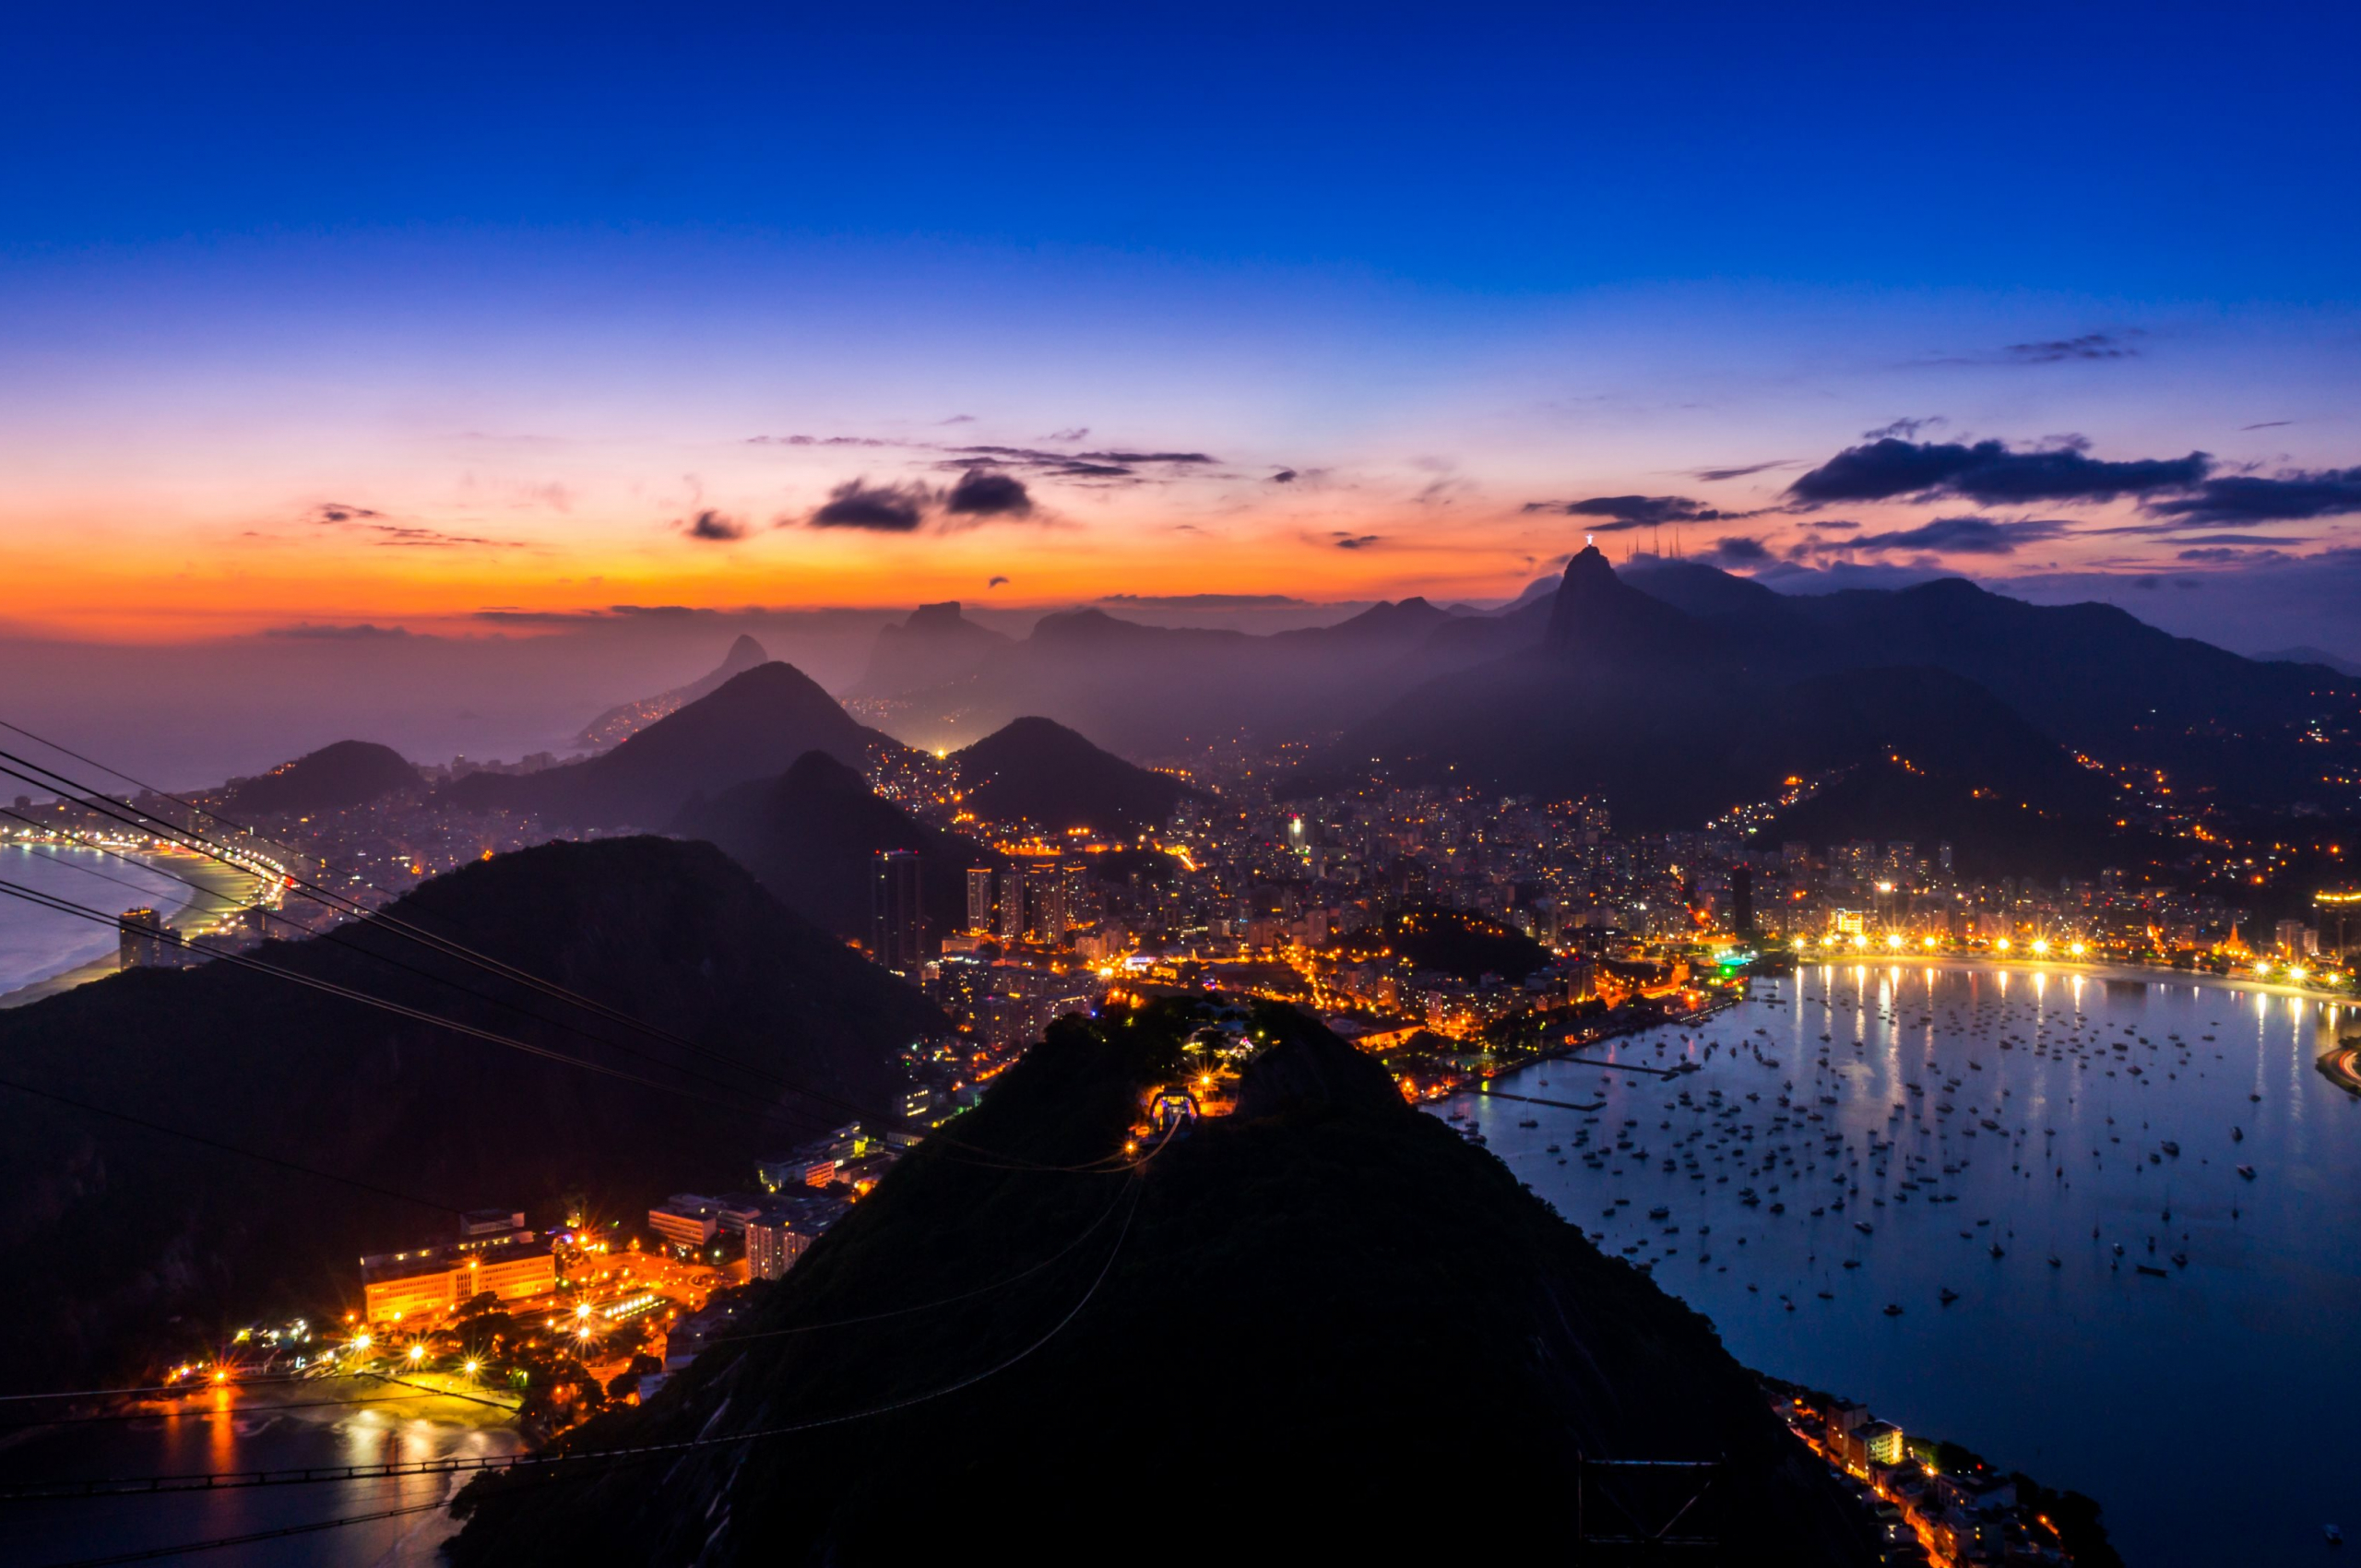 Free Download Greetings From Rio De Janeiro Hd Wallpapers 4k